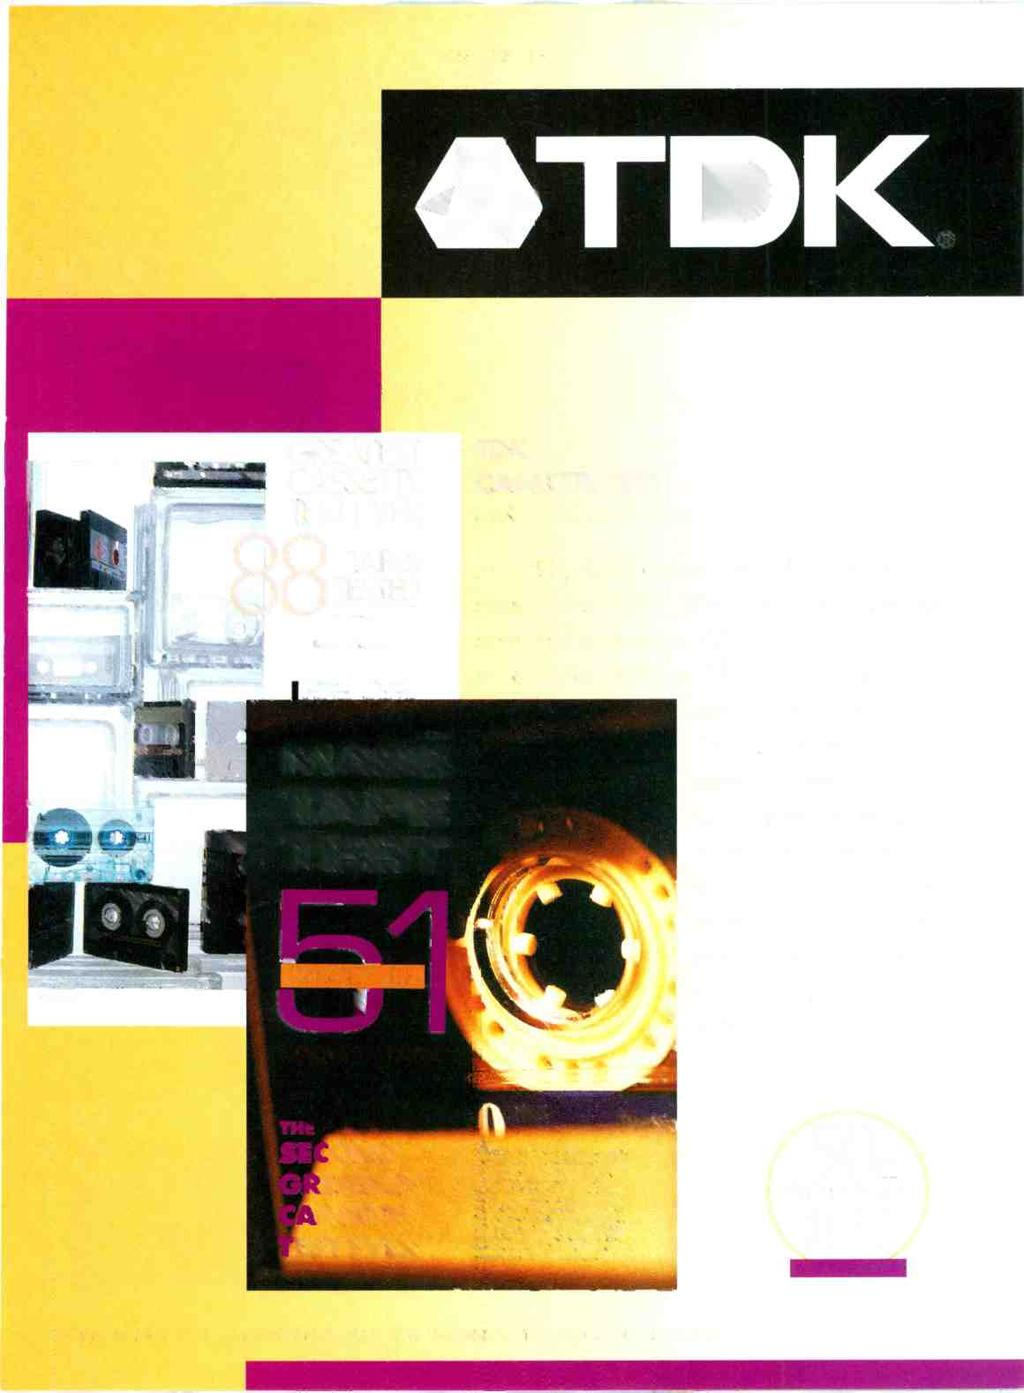 ADVERTISEMENT >I pe TDK GREATEST CASSETTE TEST EVER TAPES TESTED Howard A. Roberson.o.amA..,e..ÄJOI,1..n,s,et Mss reisene 'n, ee tievenv MASS TAPE TEST EDWARD J.